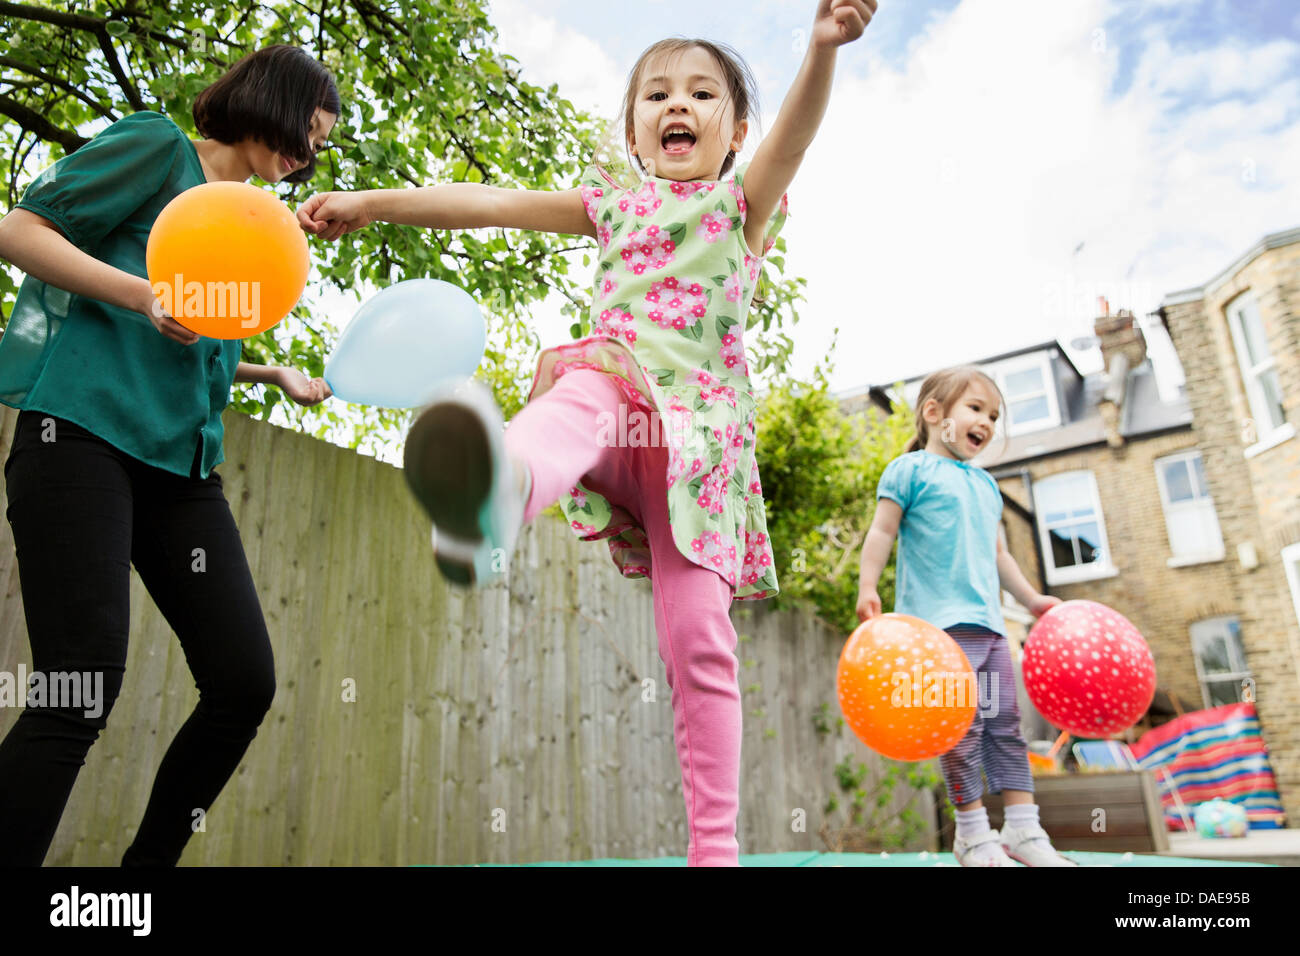 Mother and daughters playing in garden with balloons - Stock Image